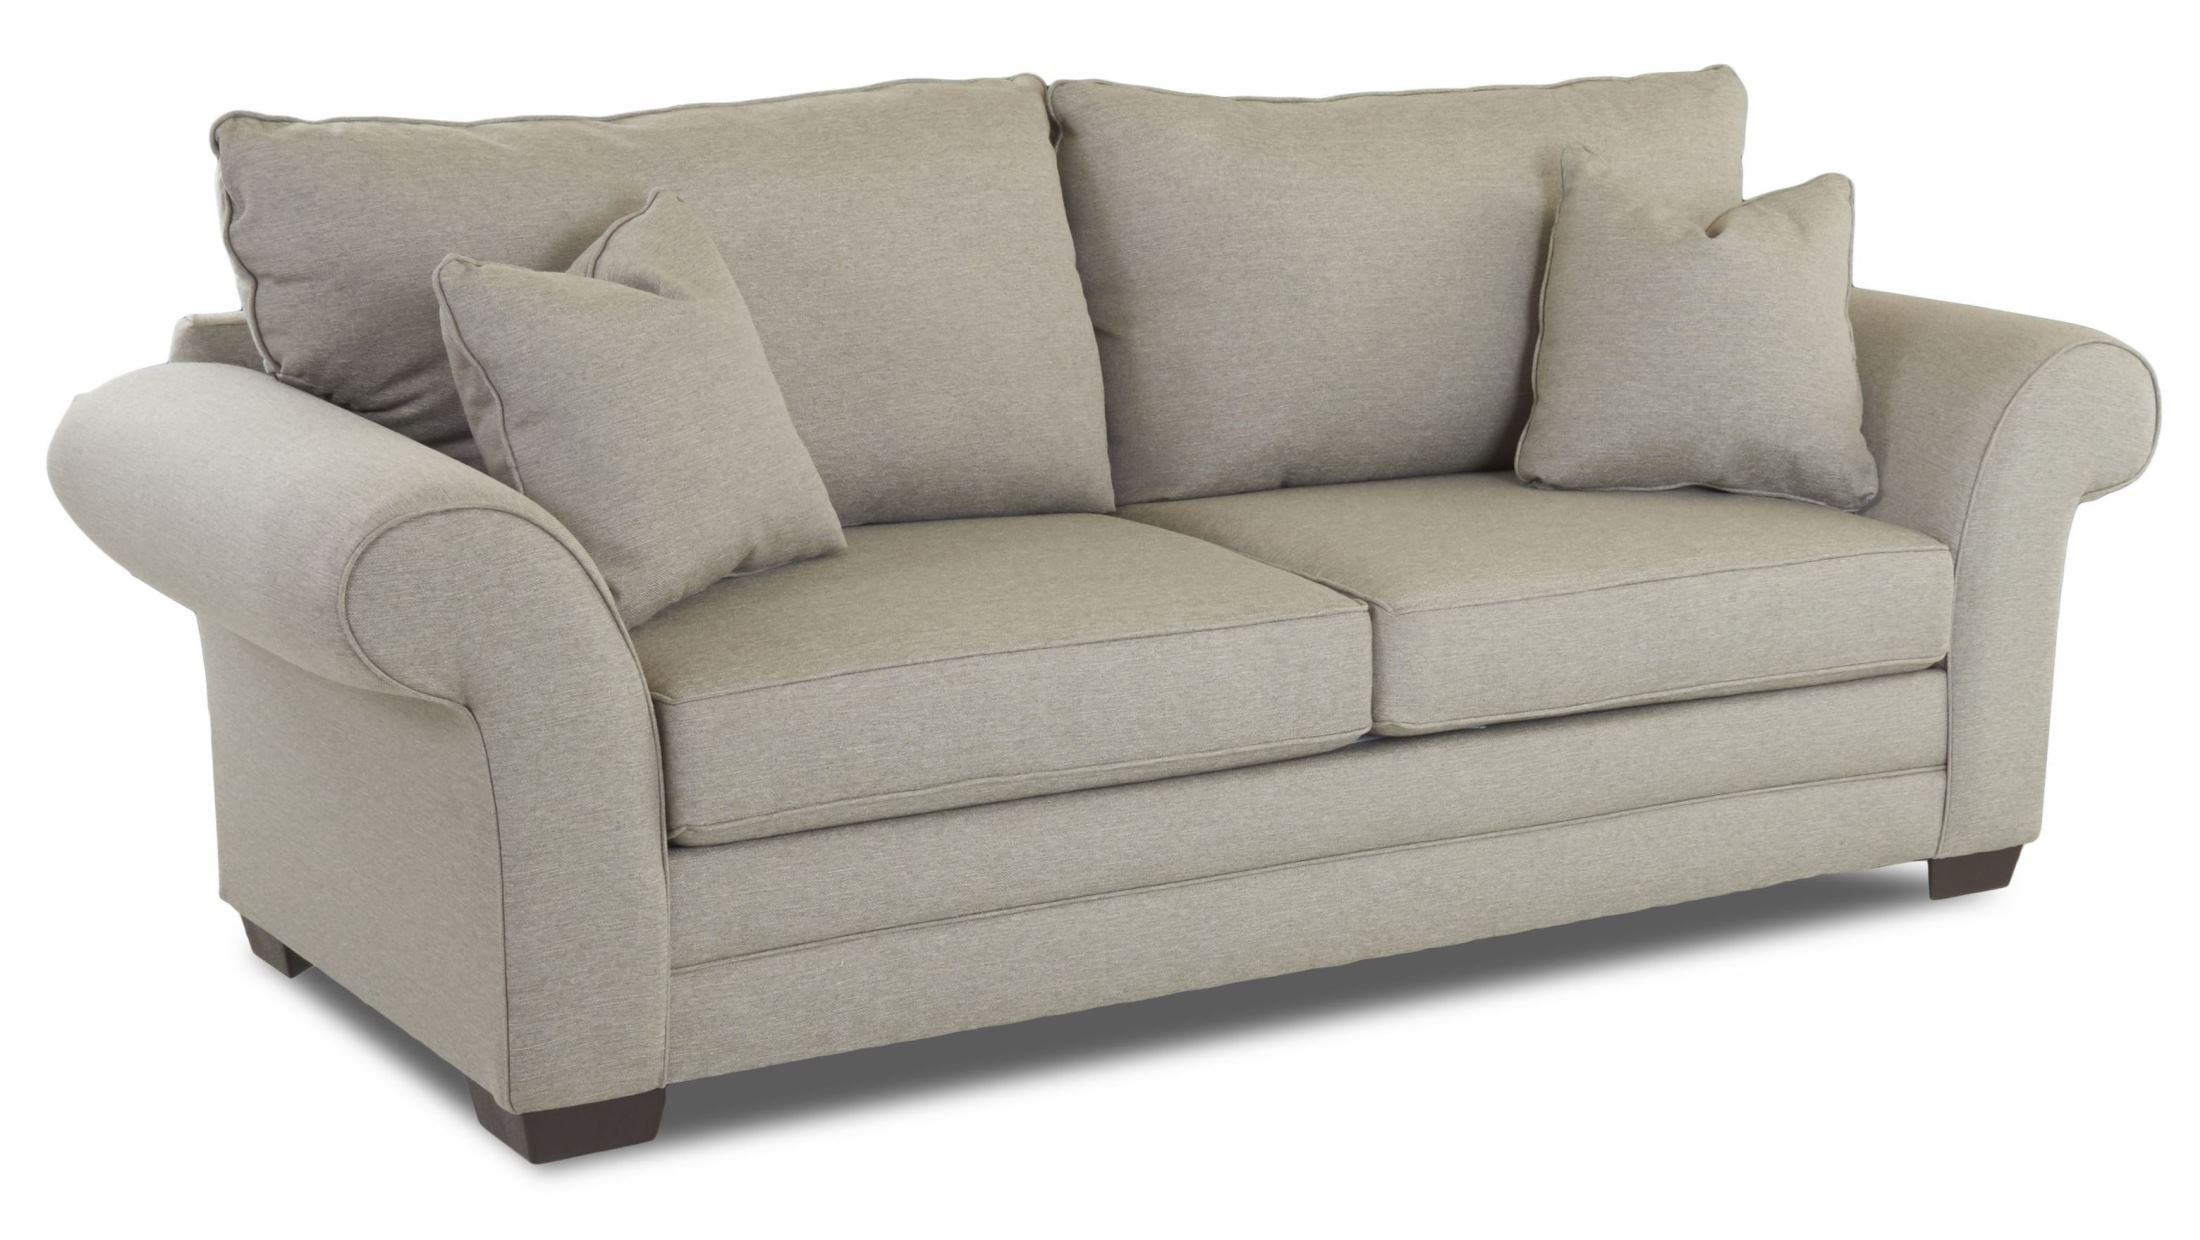 comfortable loveseat uncategorized, loveseat most comfortable modern designs gray rectangular  shape comfortable to sit GQRQMNN